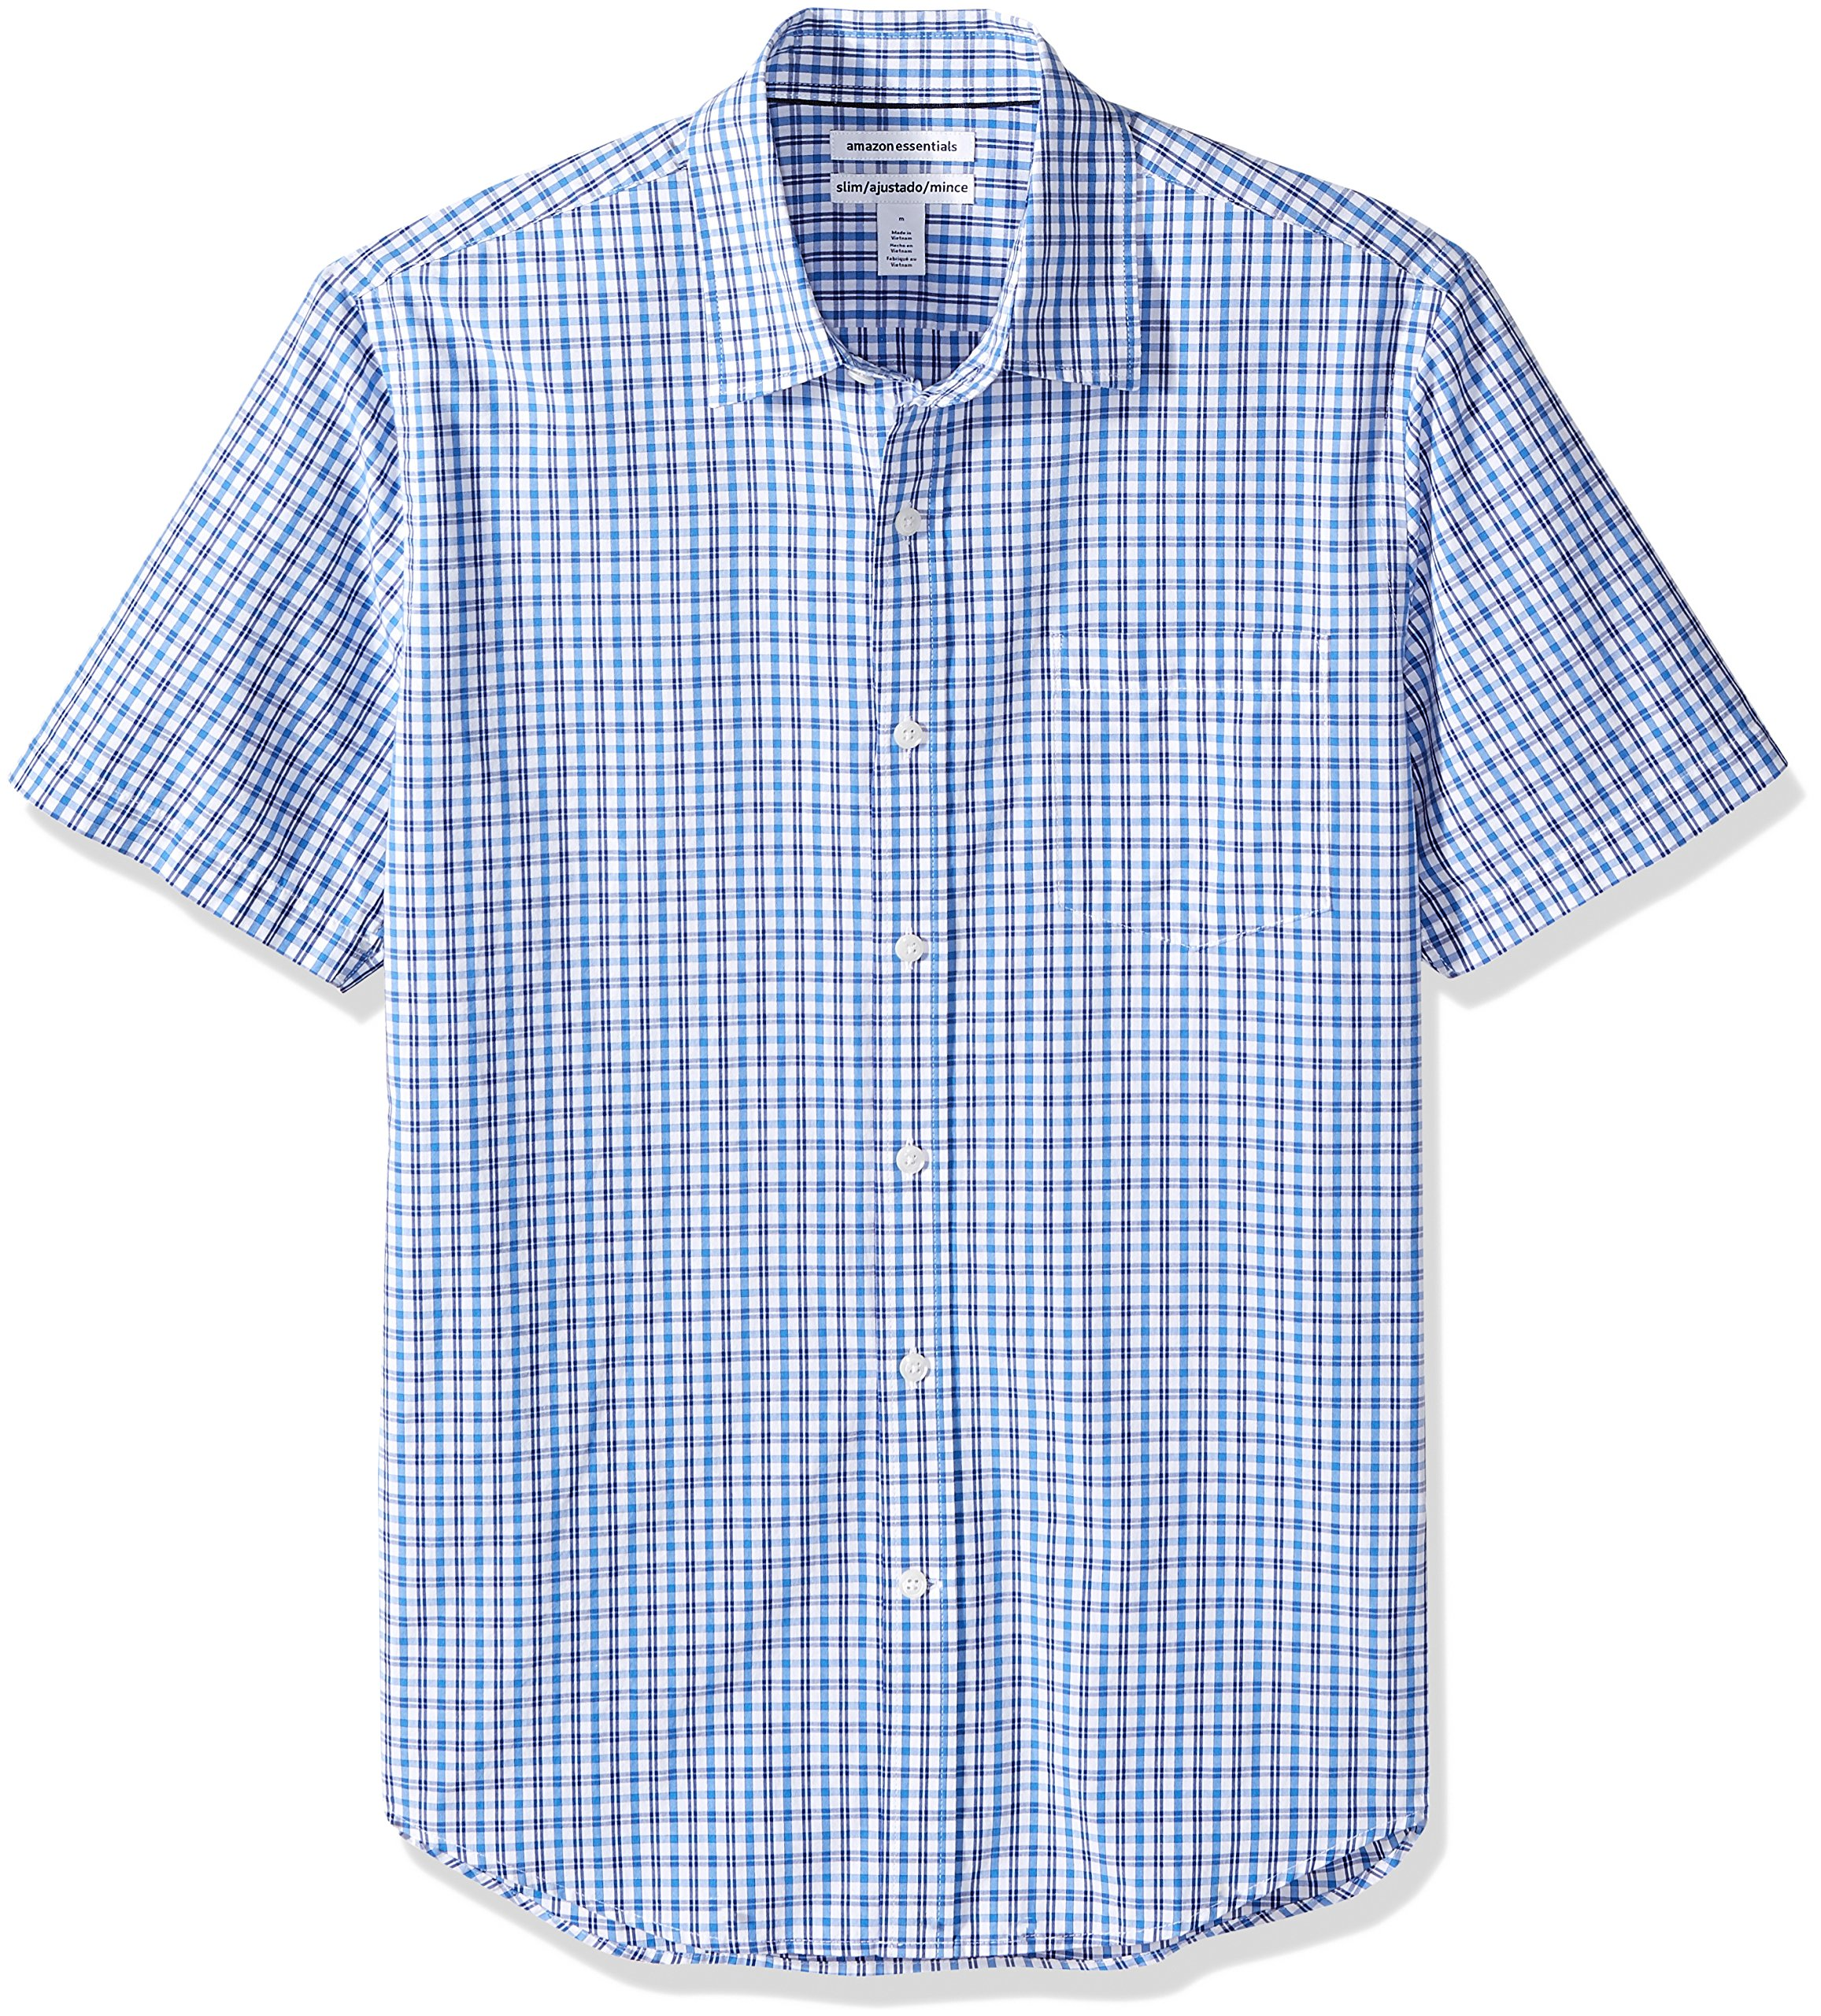 Amazon Essentials Men's Slim-Fit Short-Sleeve Plaid Shirt, Blue Plaid, Large